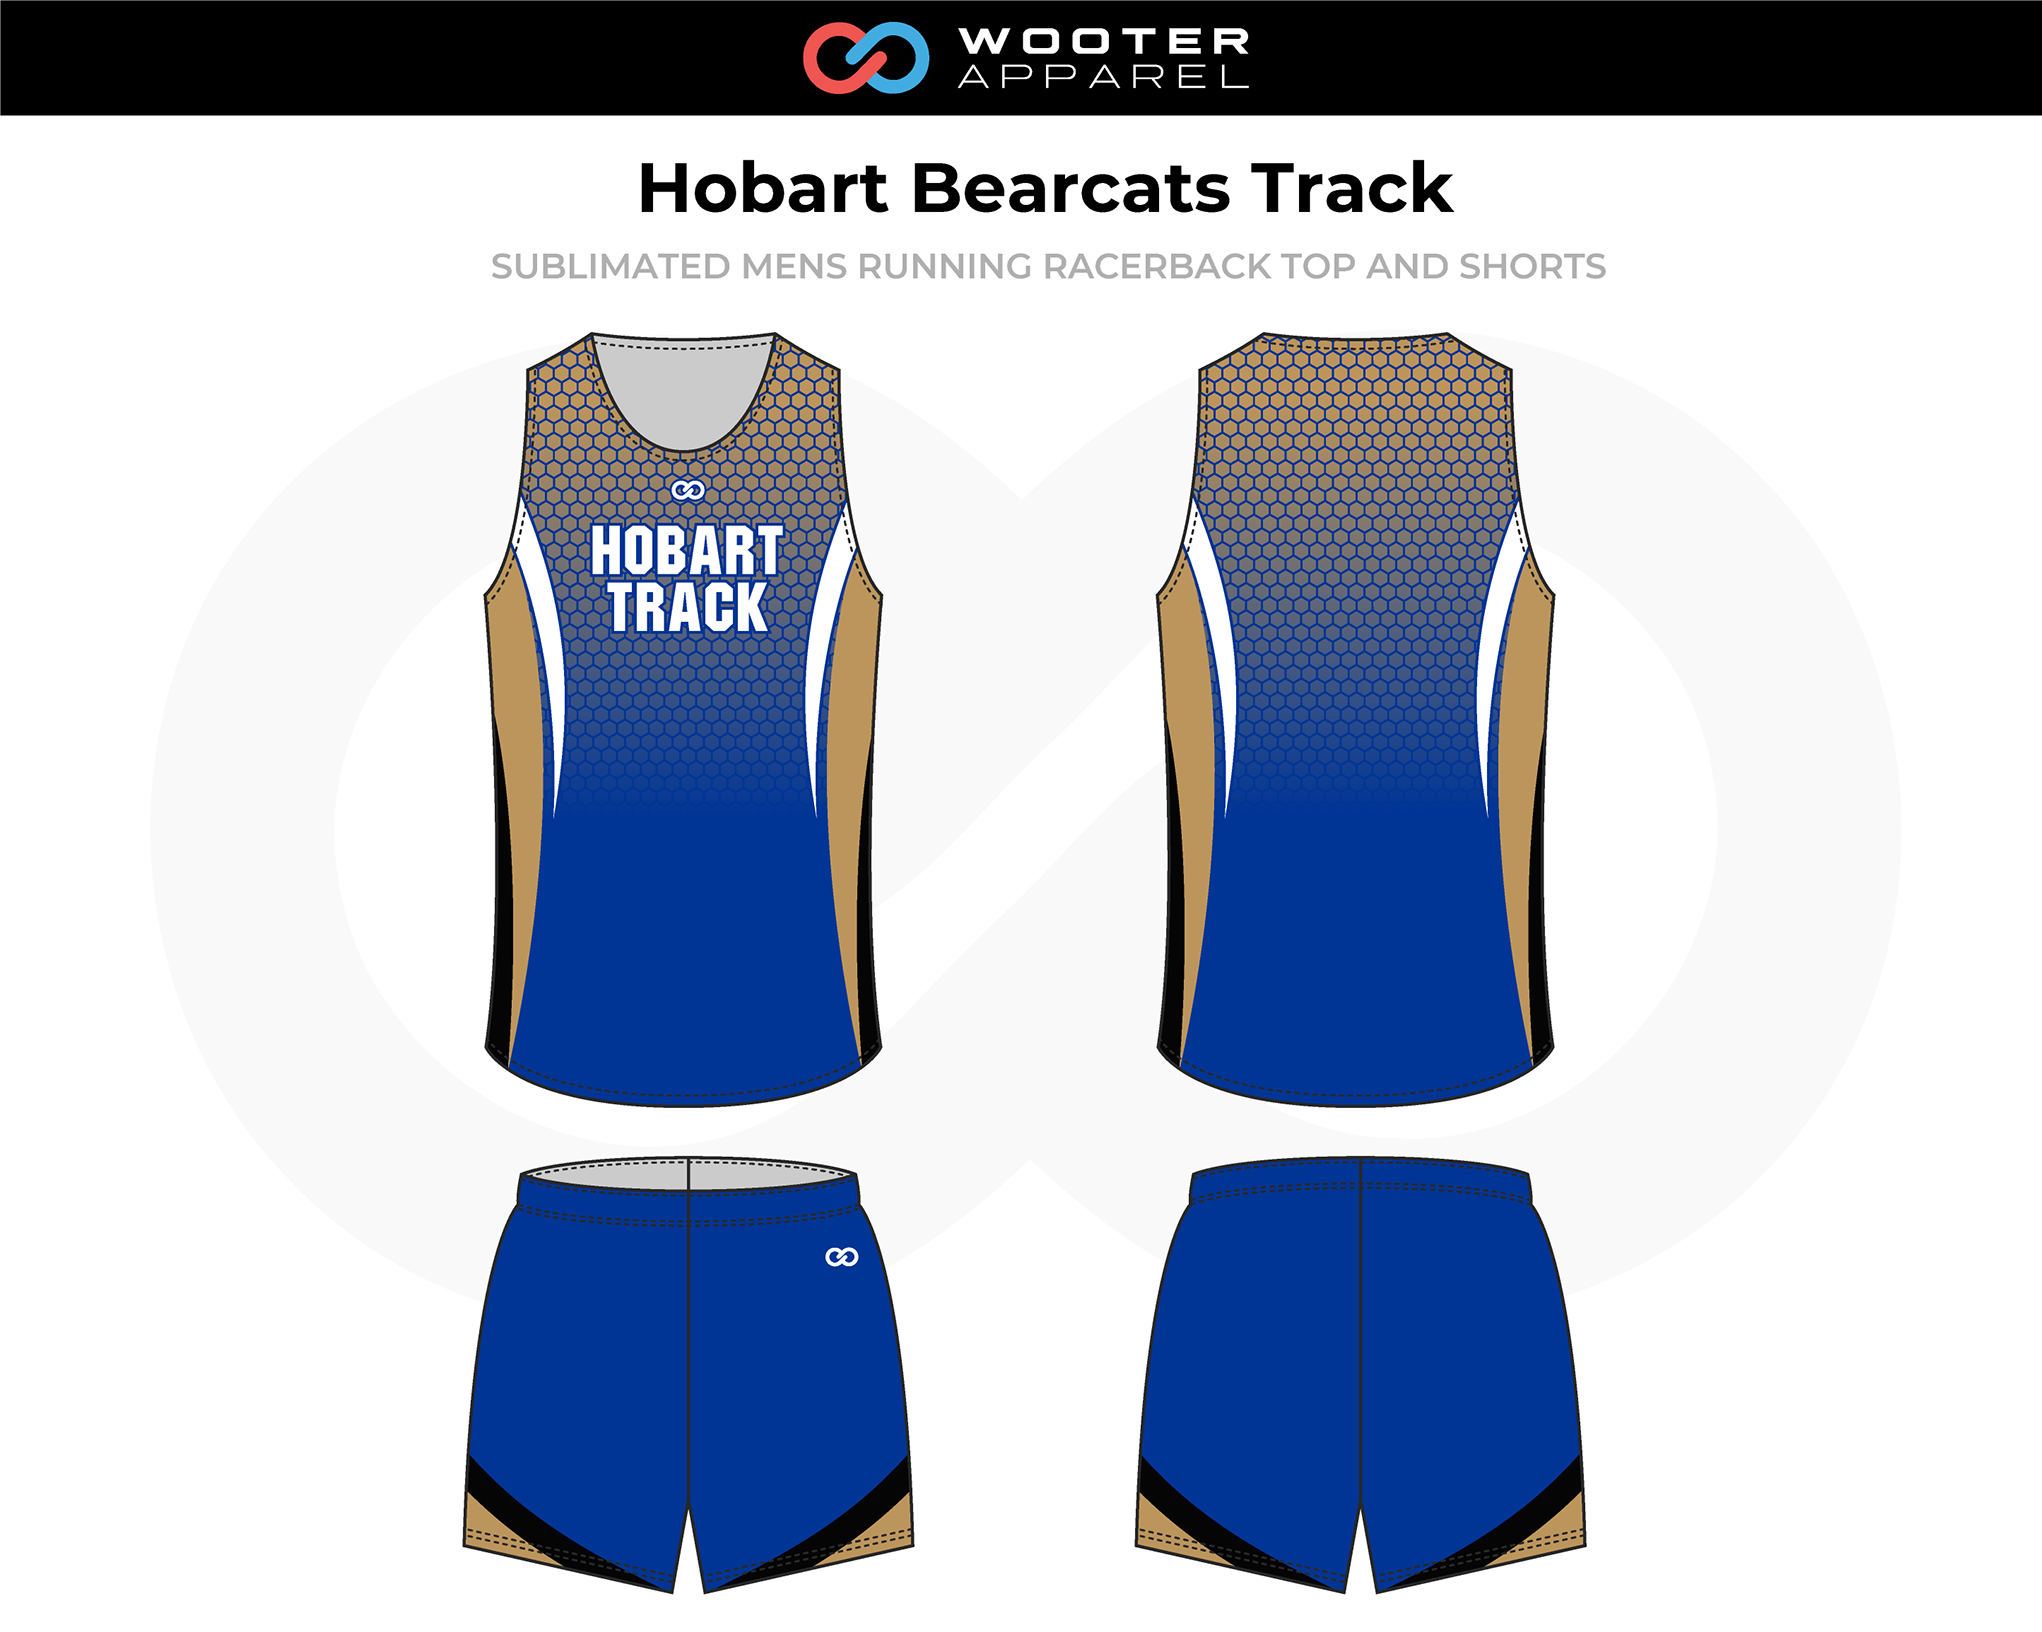 HOBART BEARCATS Blue Beige White Black Men's Track Running Jerseys, and Shorts